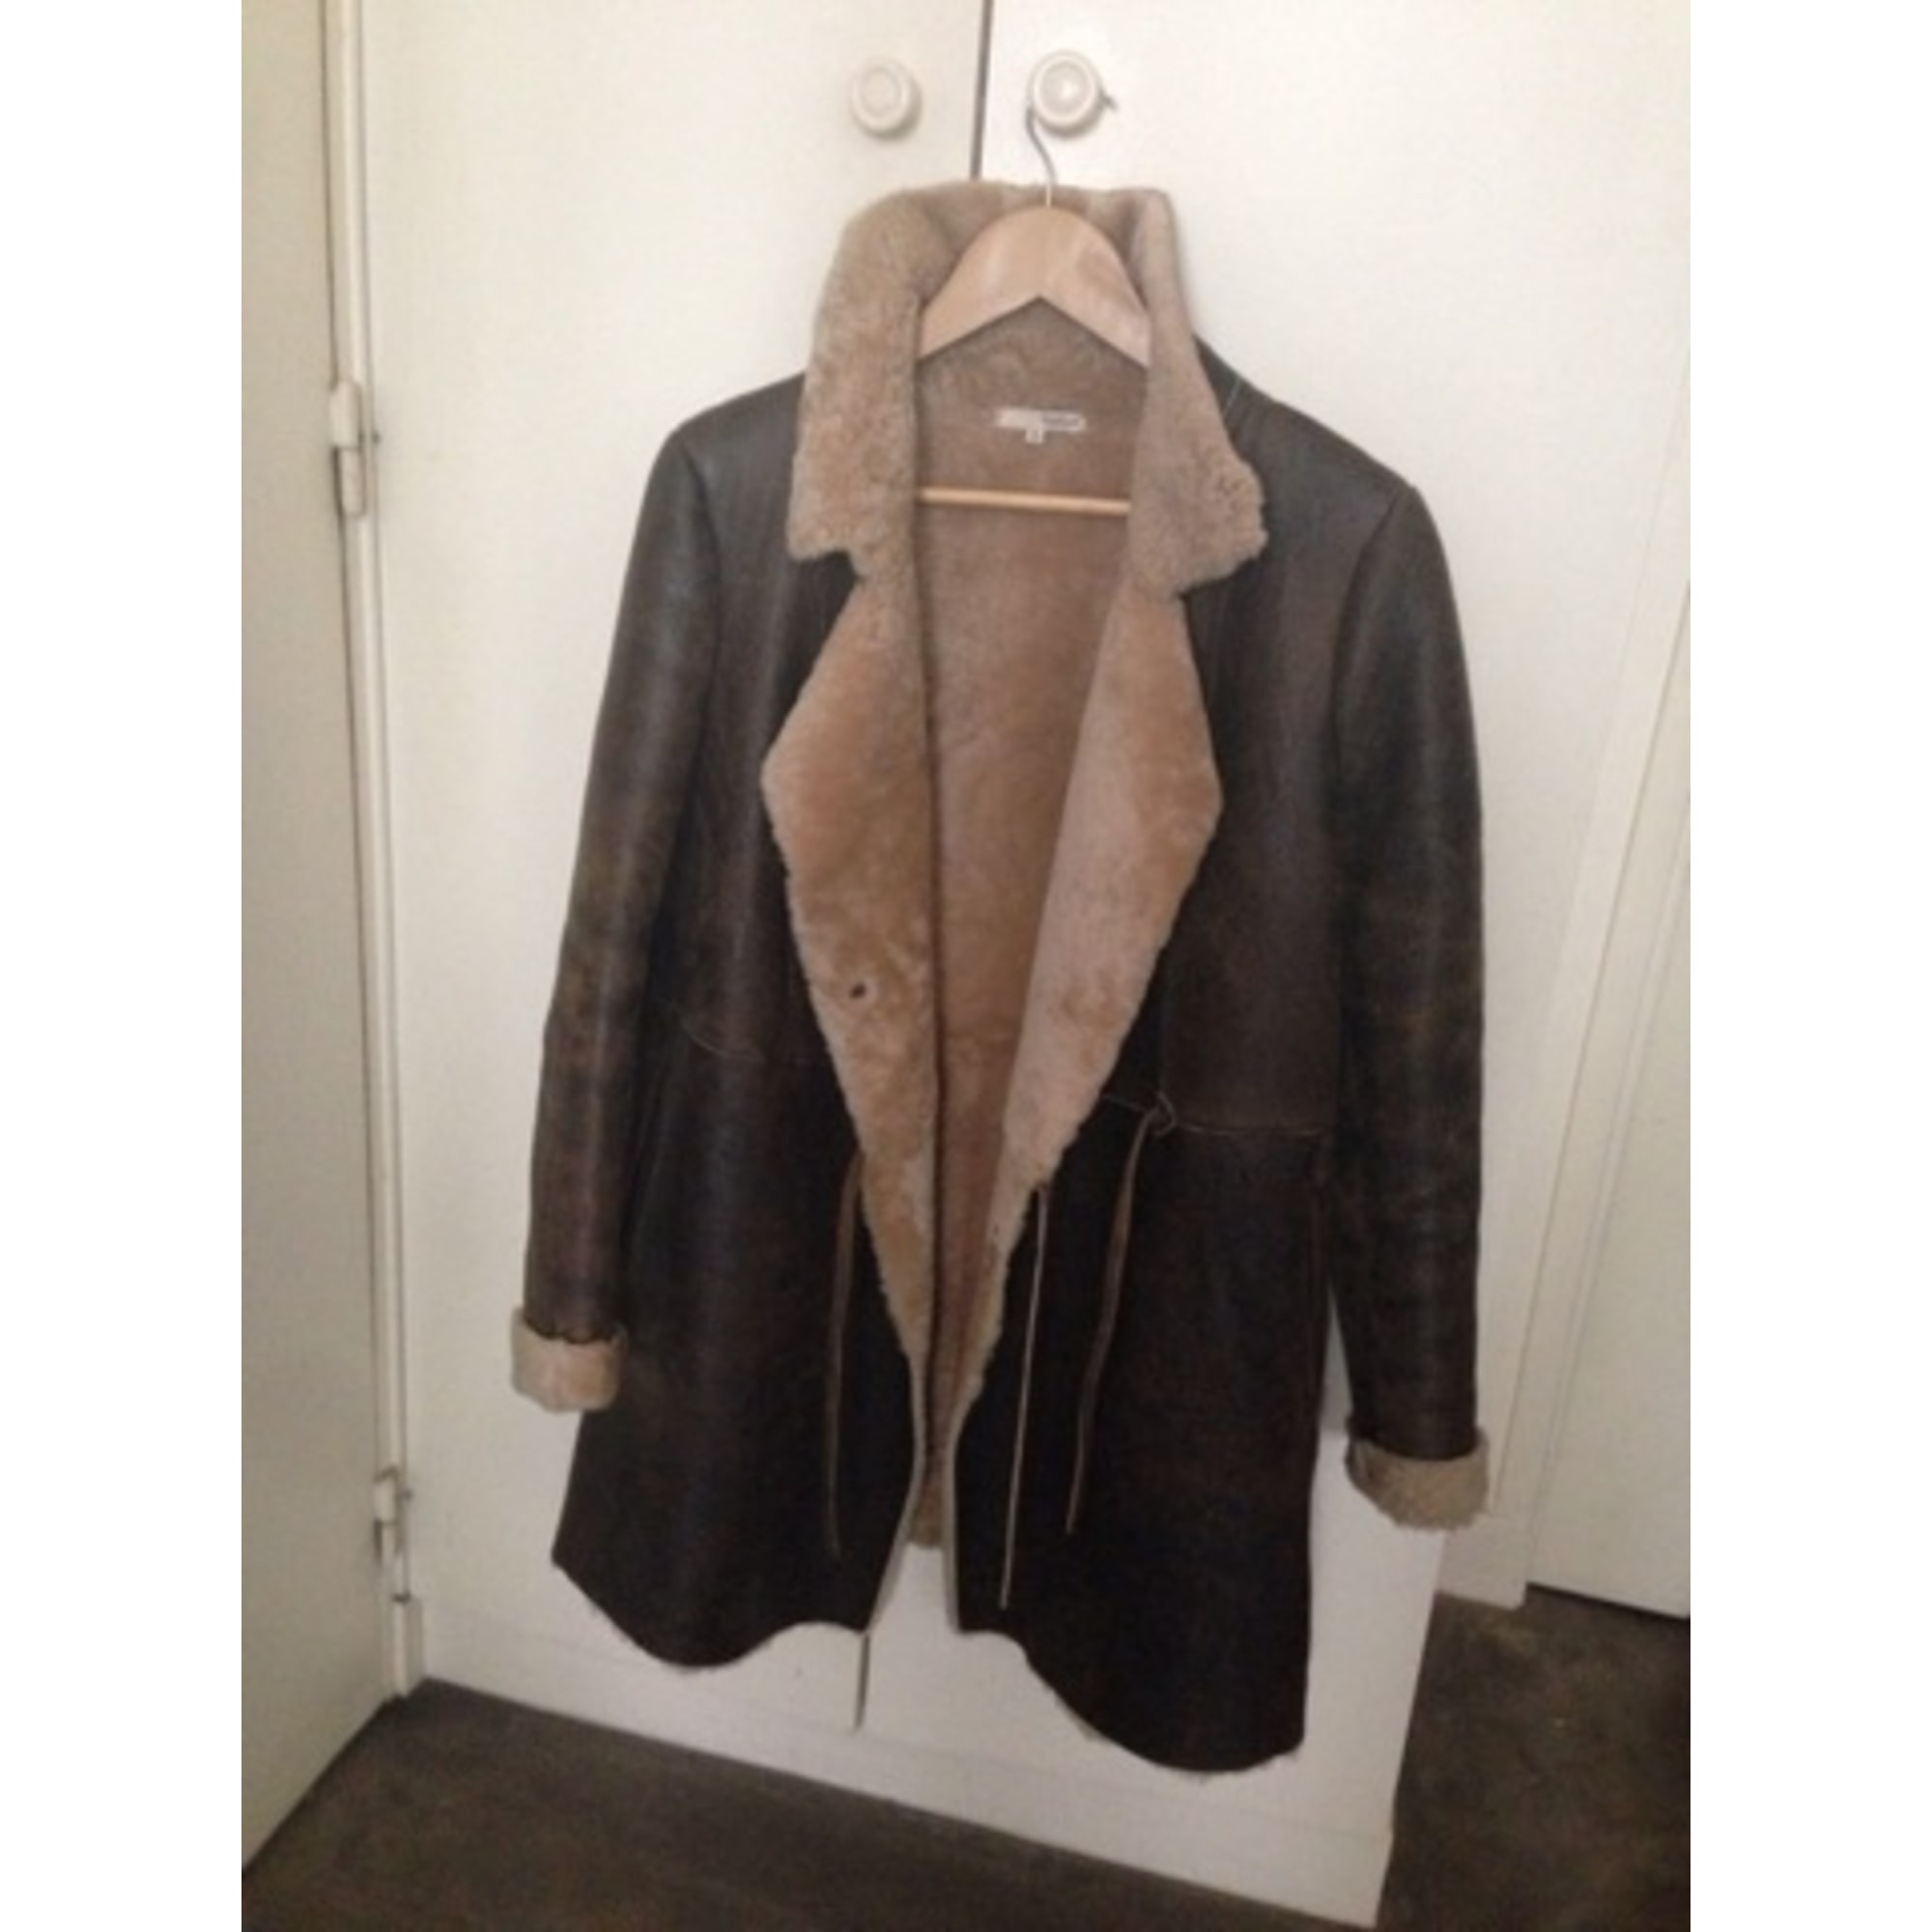 Manteau en fourrure BA&SH Marron